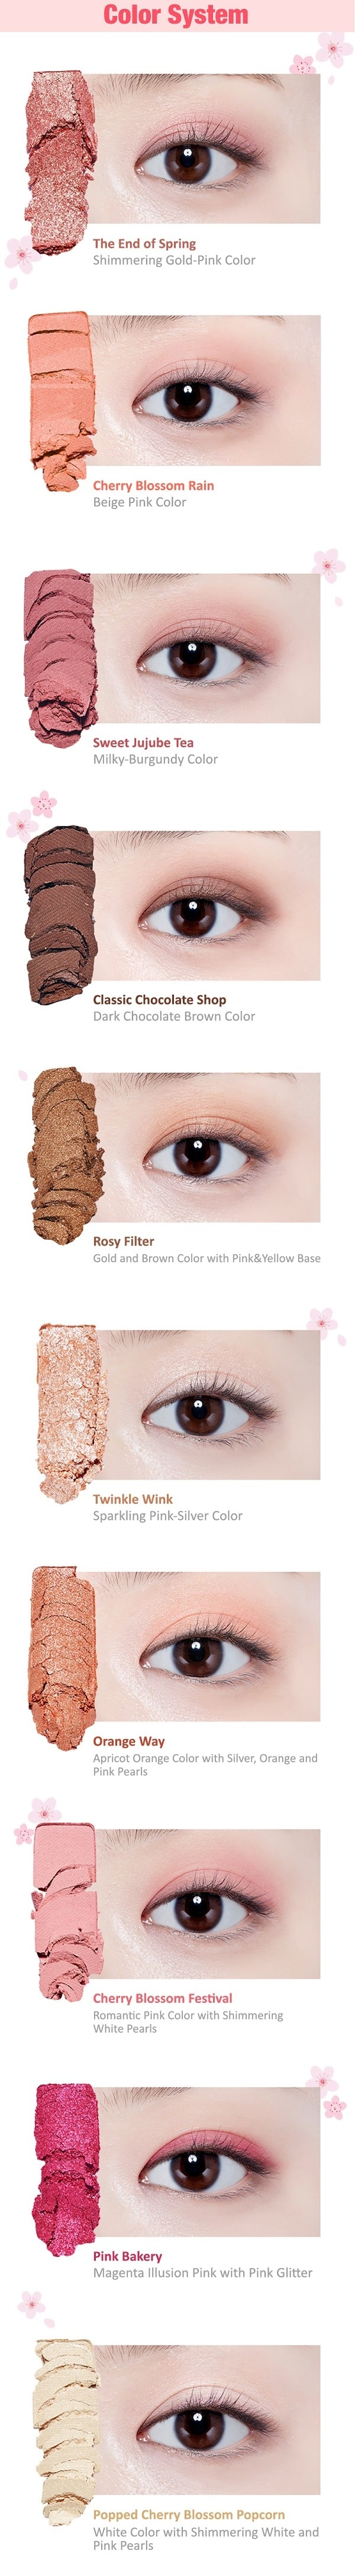 Buy ETUDE HOUSE Play Color Eyes #Cherry Blossom